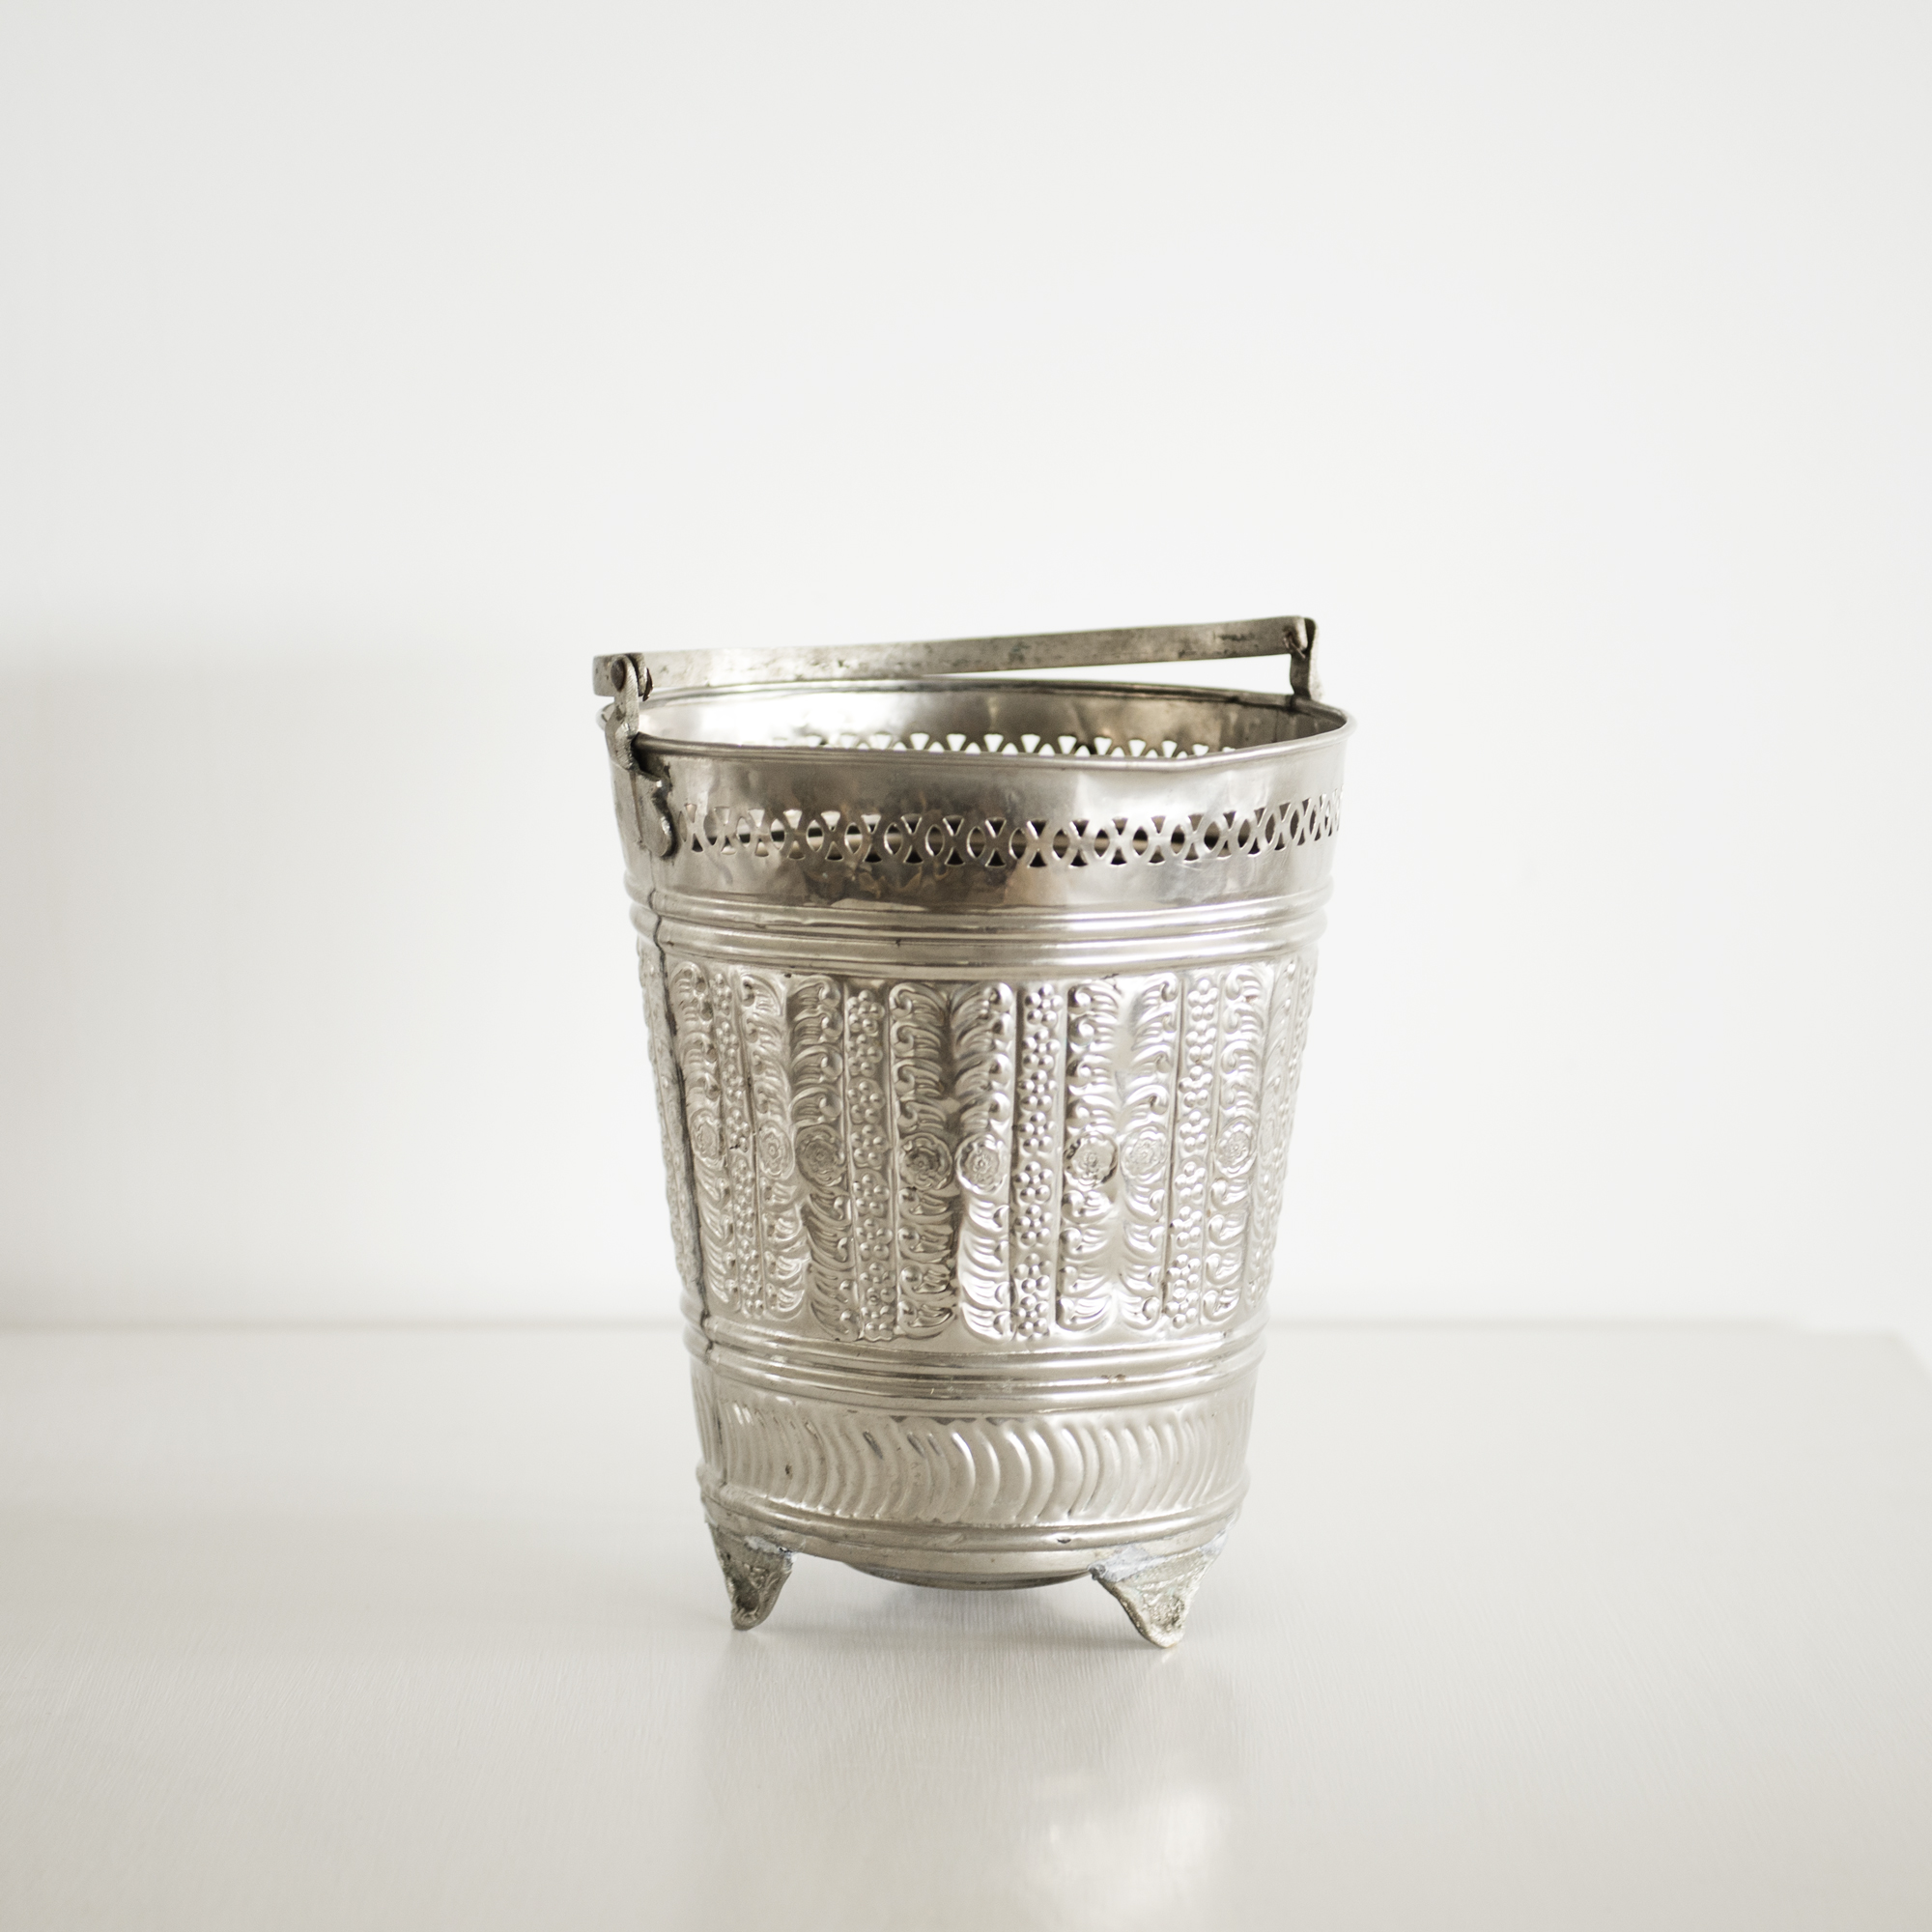 Silver Moroccan Champagne /Ice bucket | $15ea | Qty 2